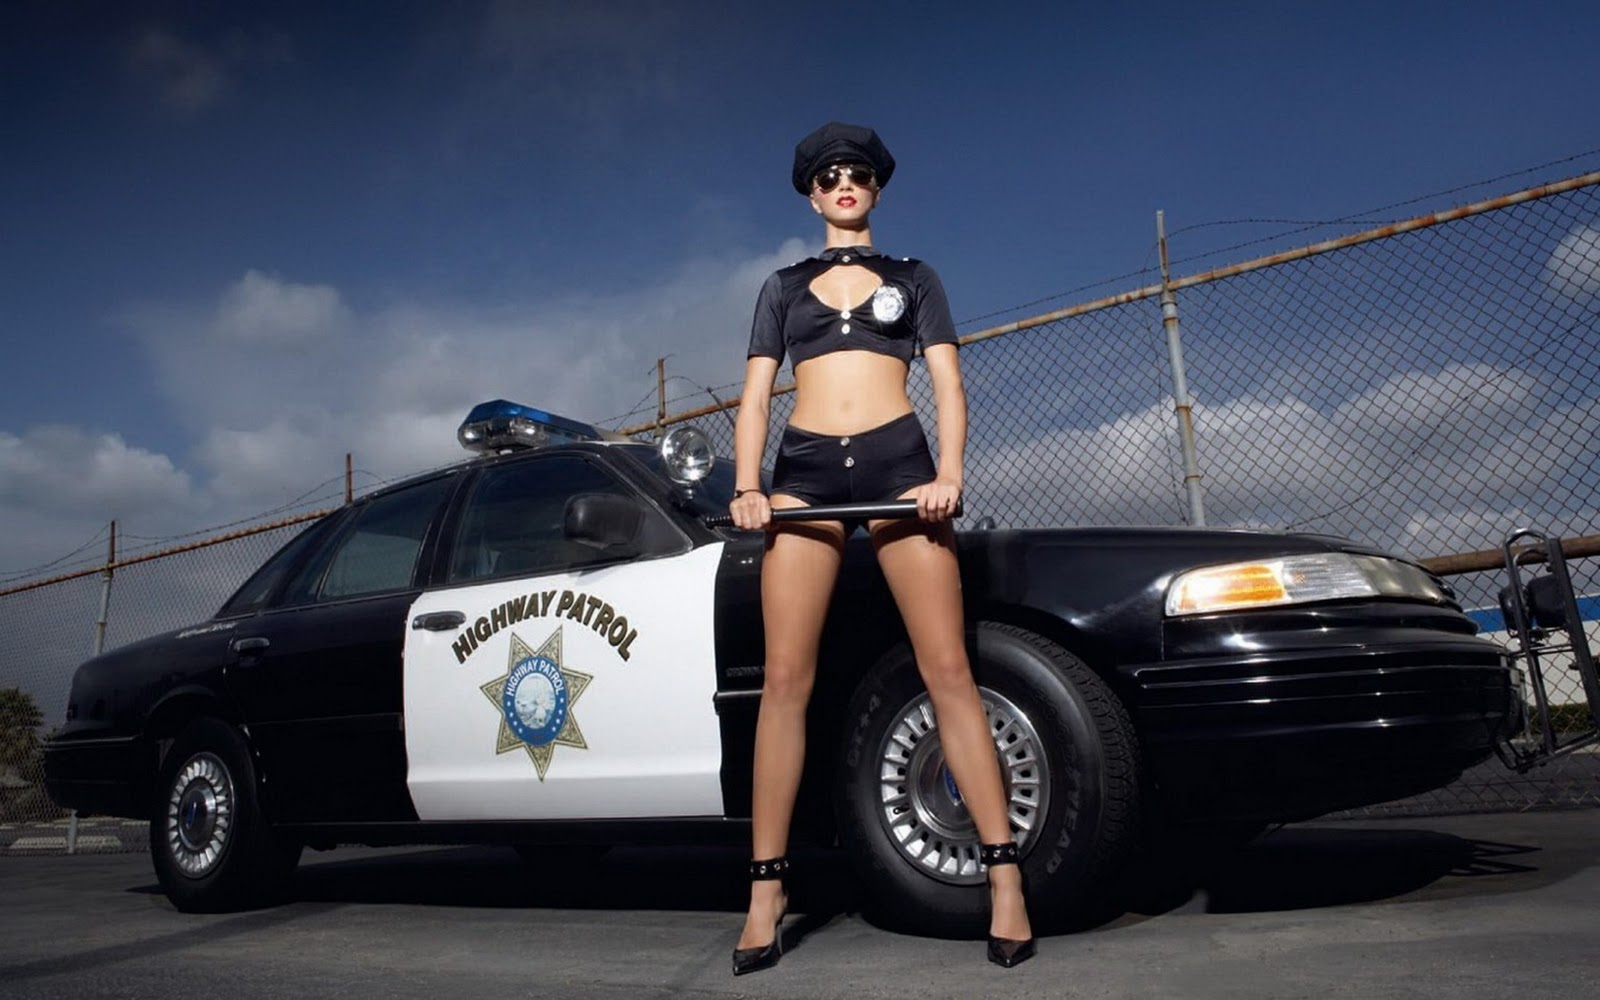 Jordan Wallpaper Iphone 6 Hot And Cute Police Girls Pics Hot And Cute Girls